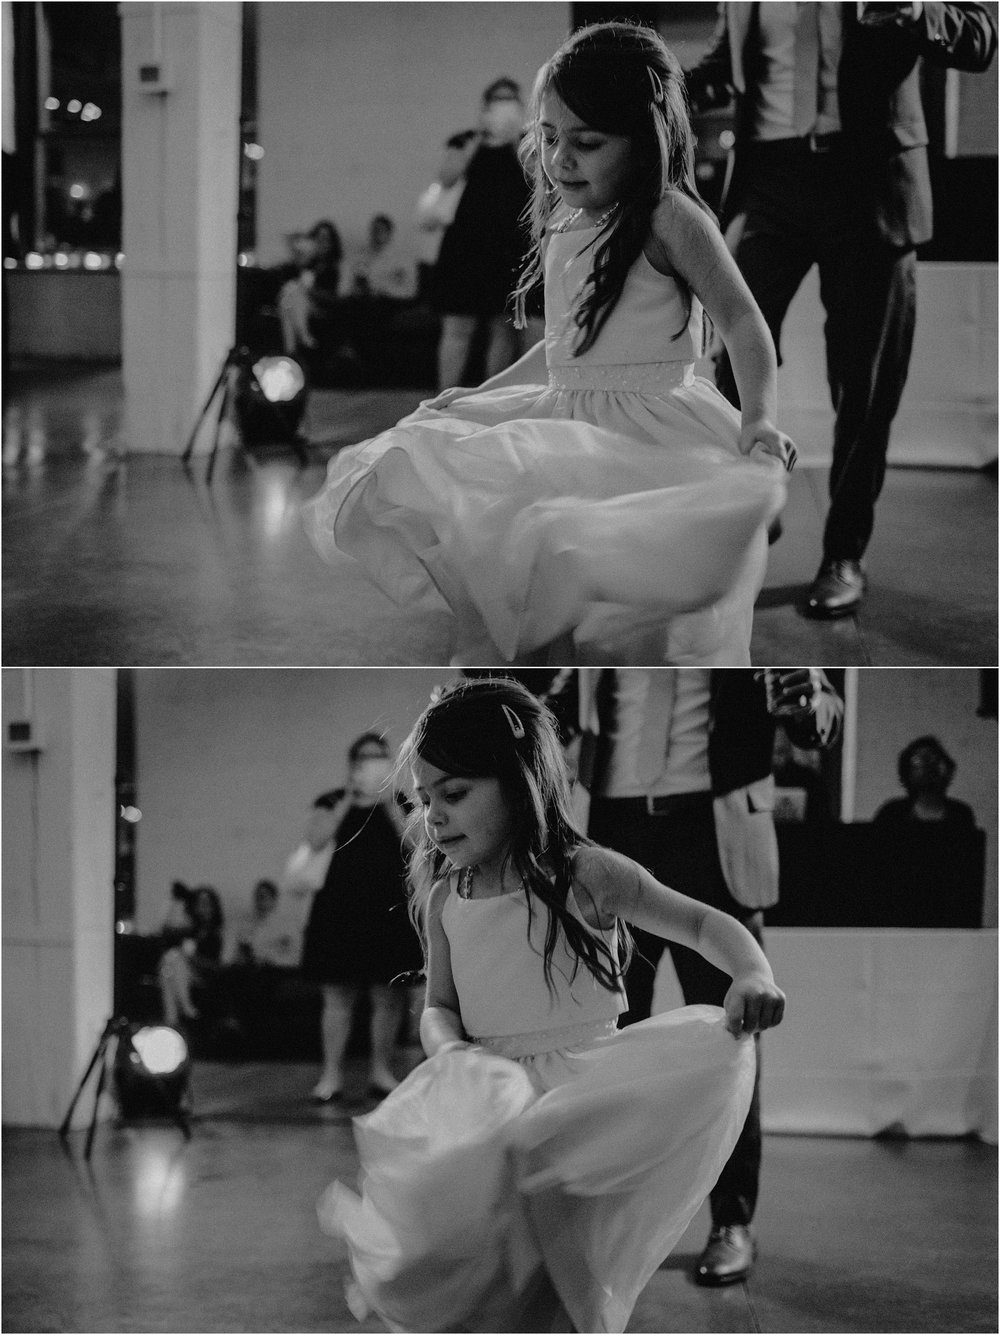 The couple's young daughter dances during the reception